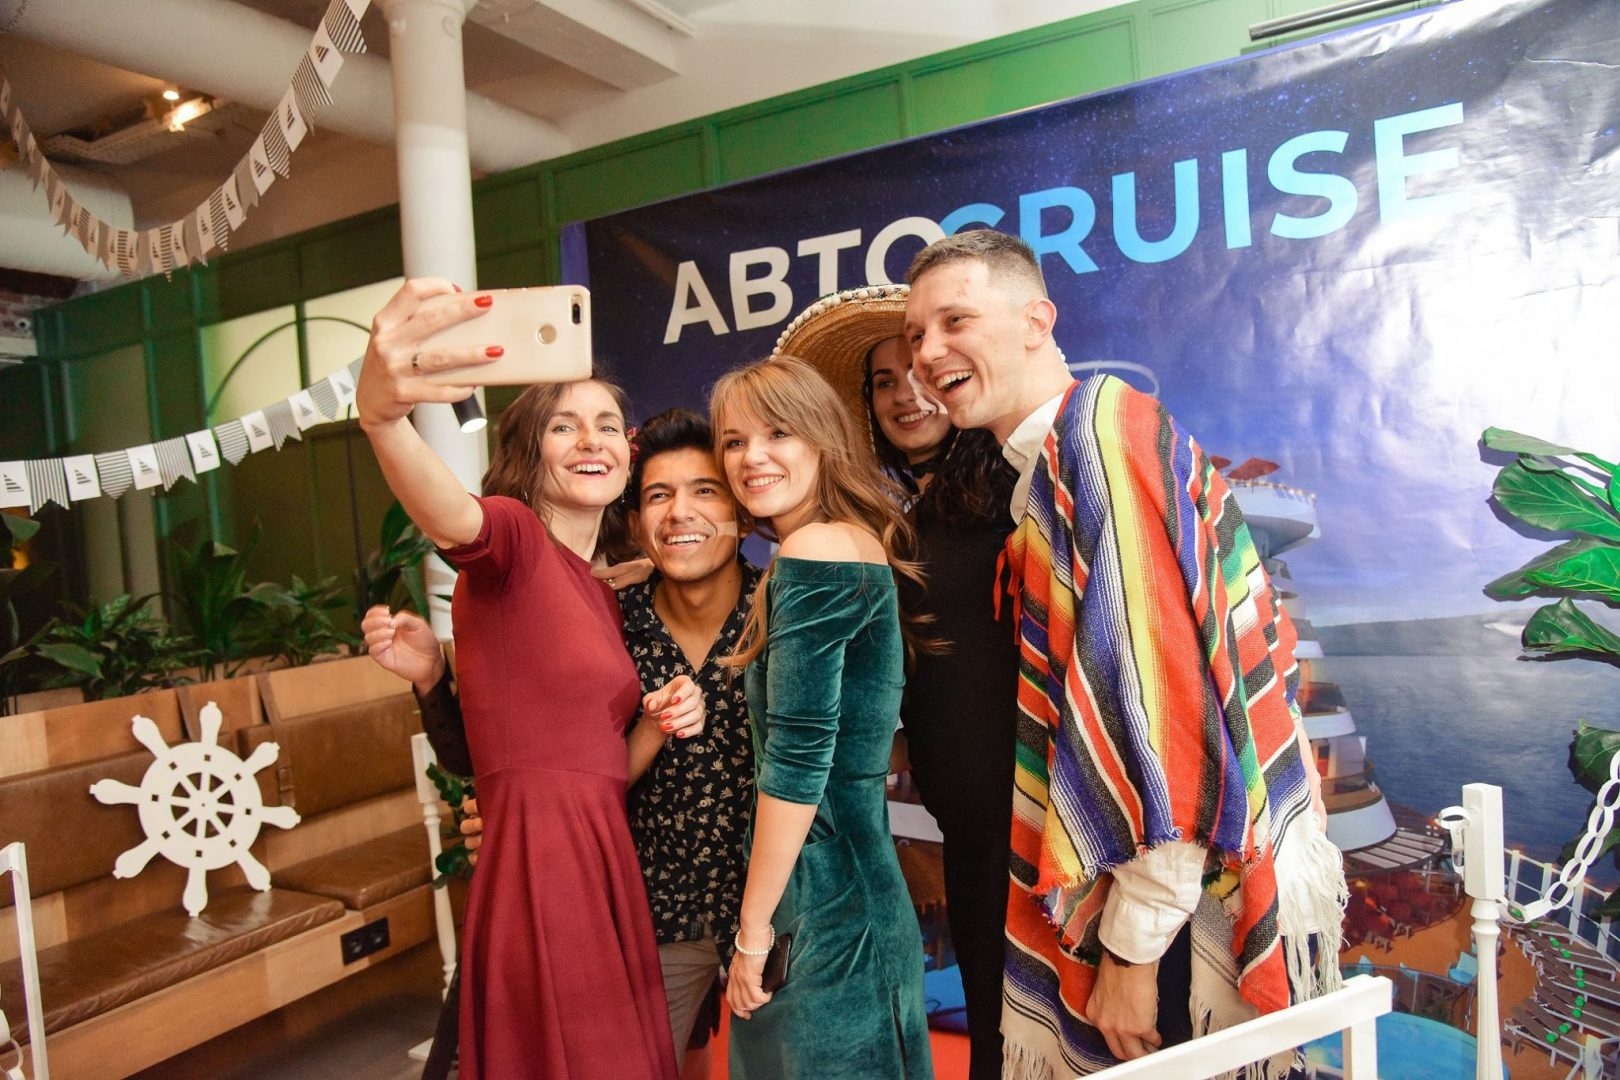 Abto Cruise New Year Party 2019